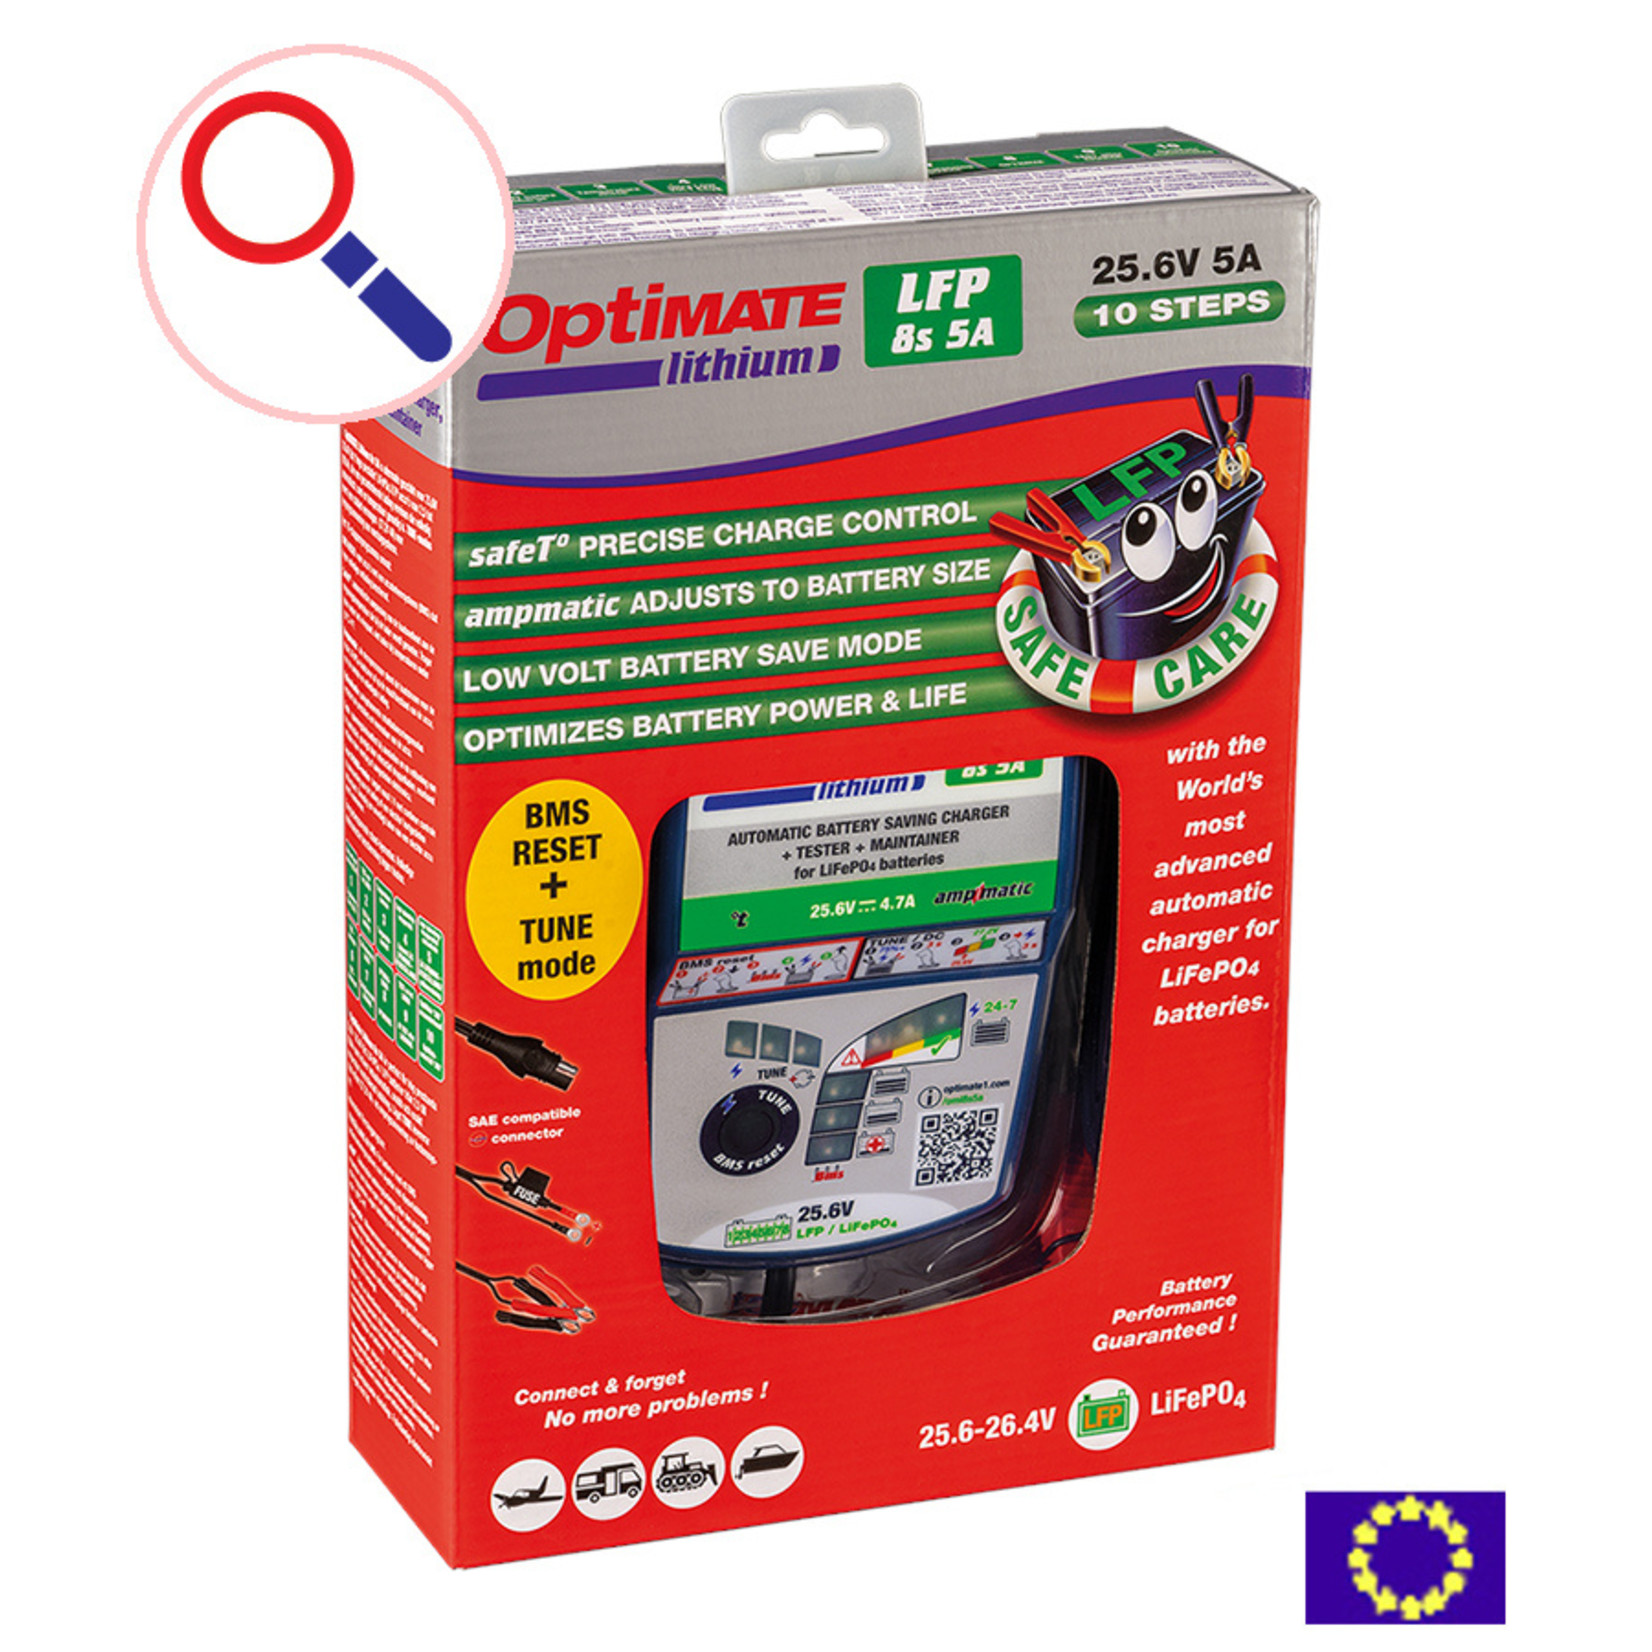 OptiMate OptiMate Lithium 8s 5A - Battery Charger